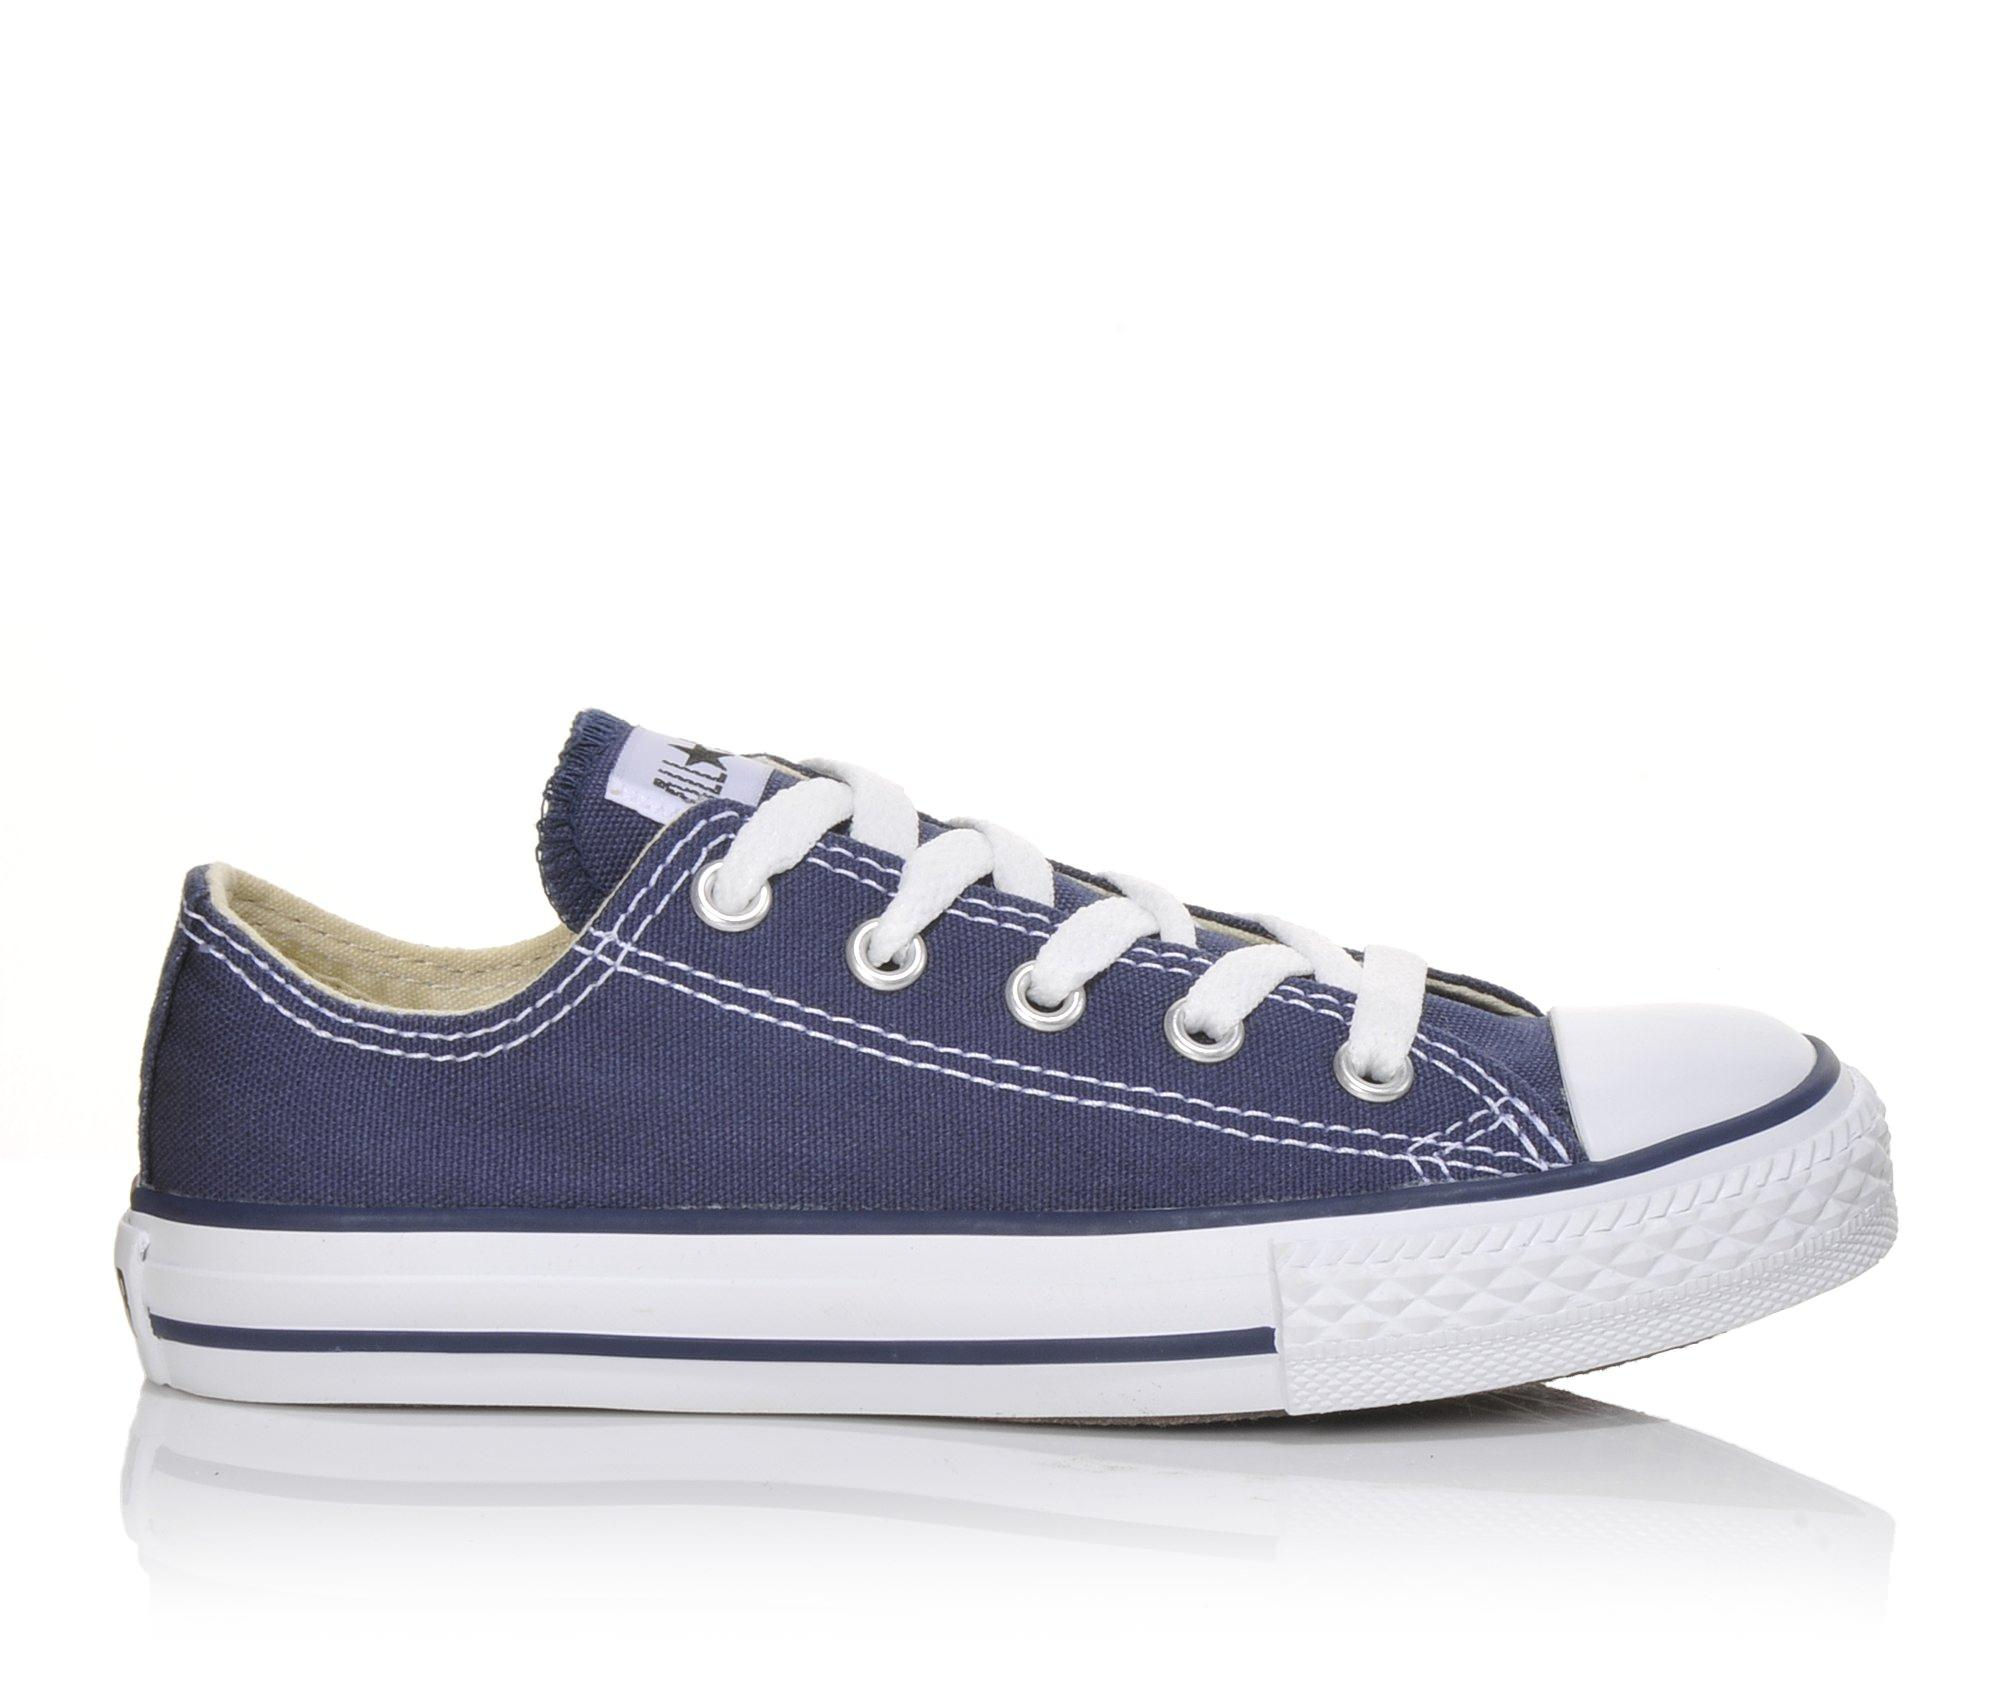 Girls' Converse Chuck Taylor All Star Ox Oxford Shoes (Blue)